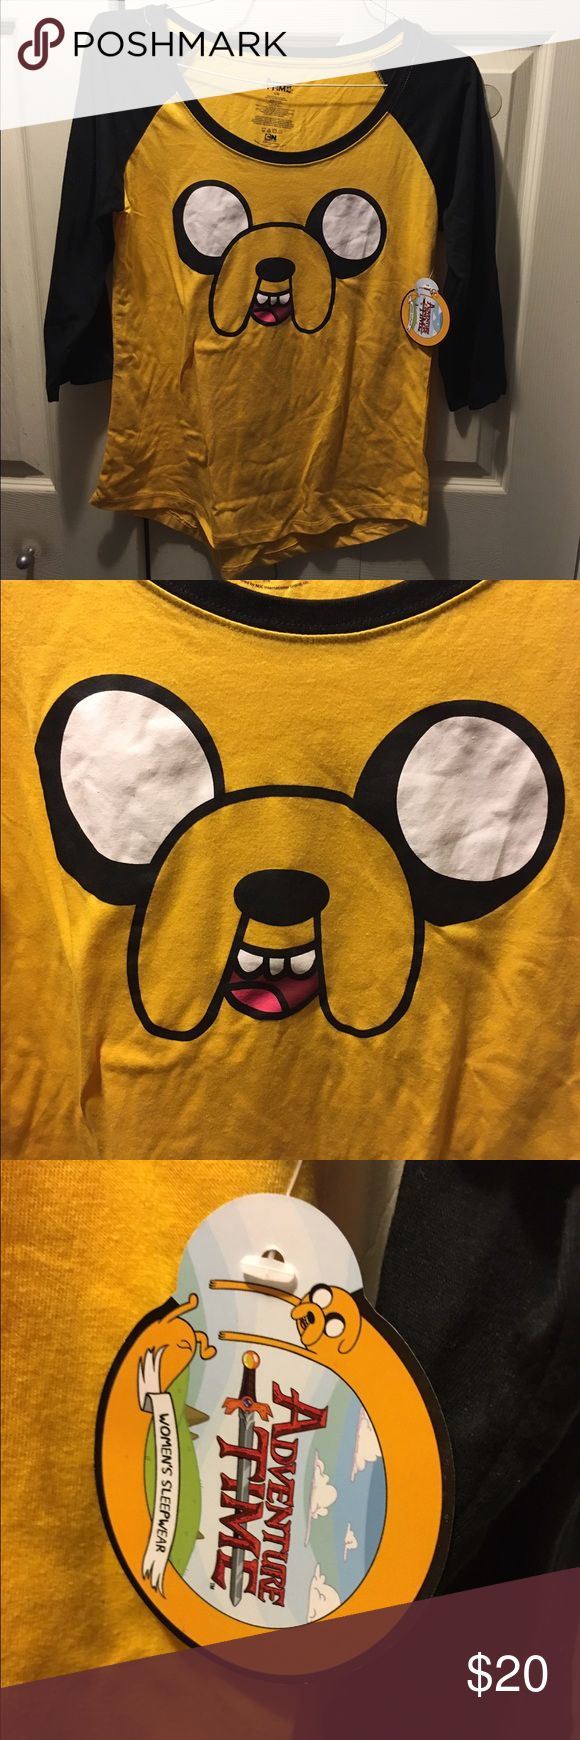 d704c064bb Jake the Dog Adventure Time women s pajamas large Jake the Dog Adventure  Time pajama set!